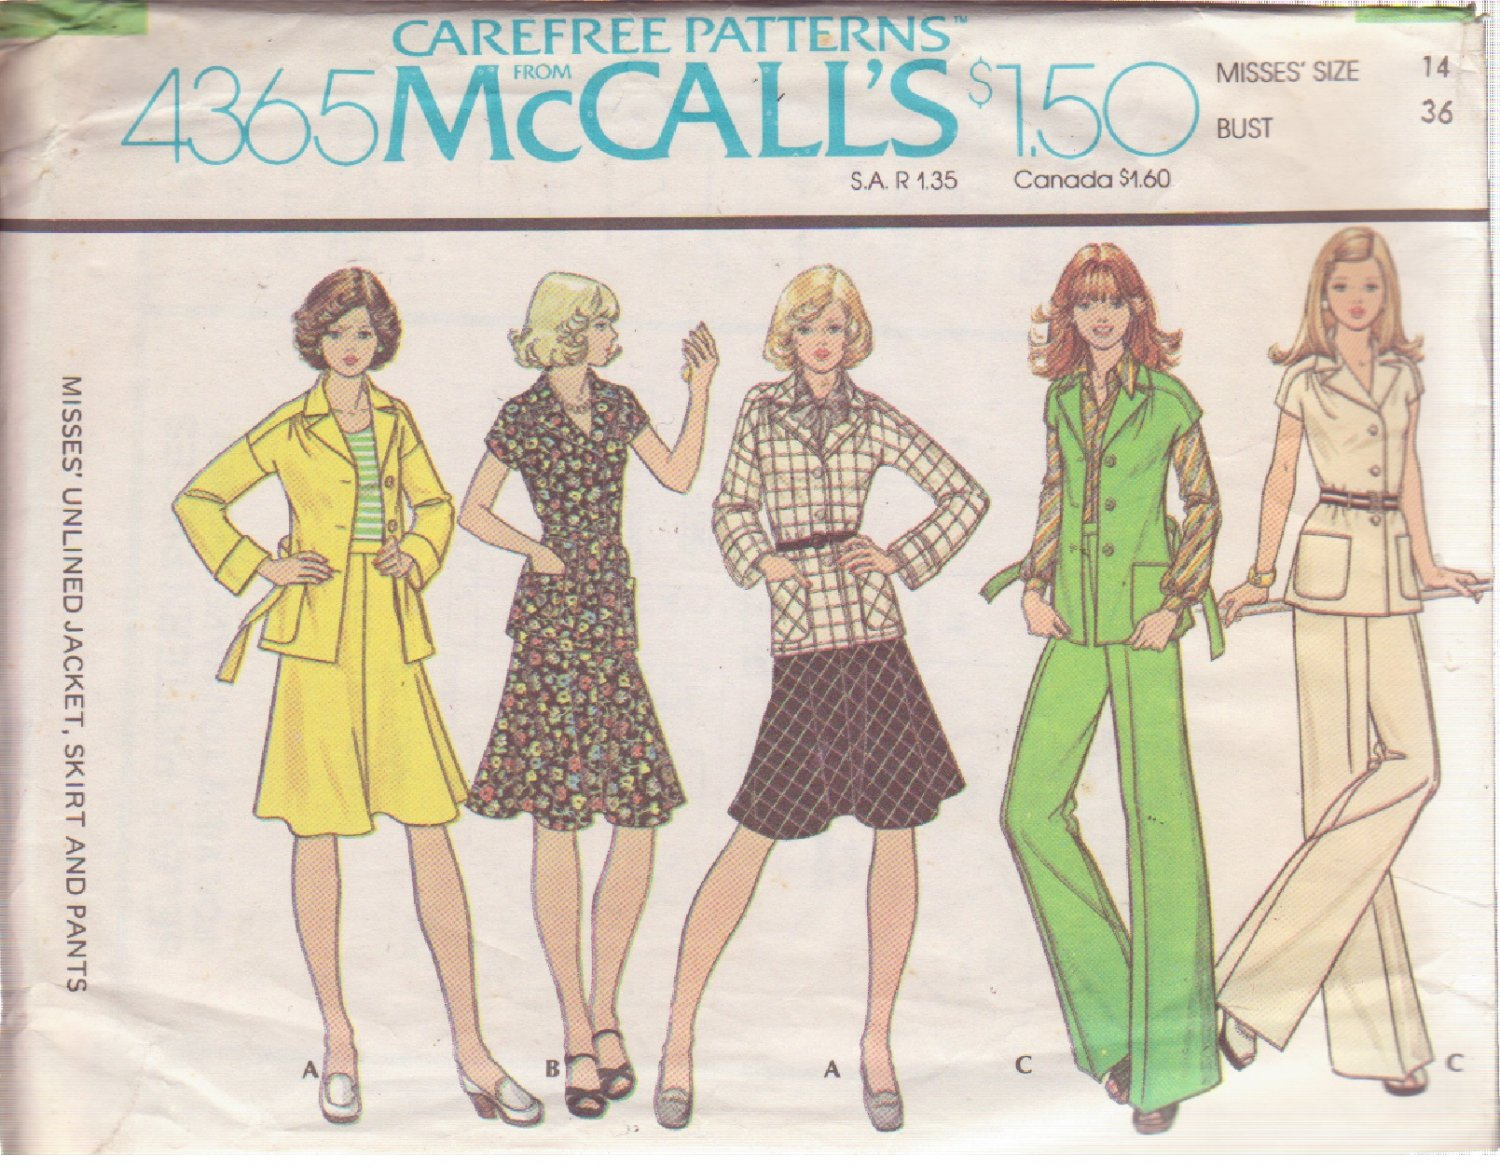 McCALL'S 1974 PATTERN 4365 SIZE 14 MISSES� JACKET, SKIRT AND PANTS